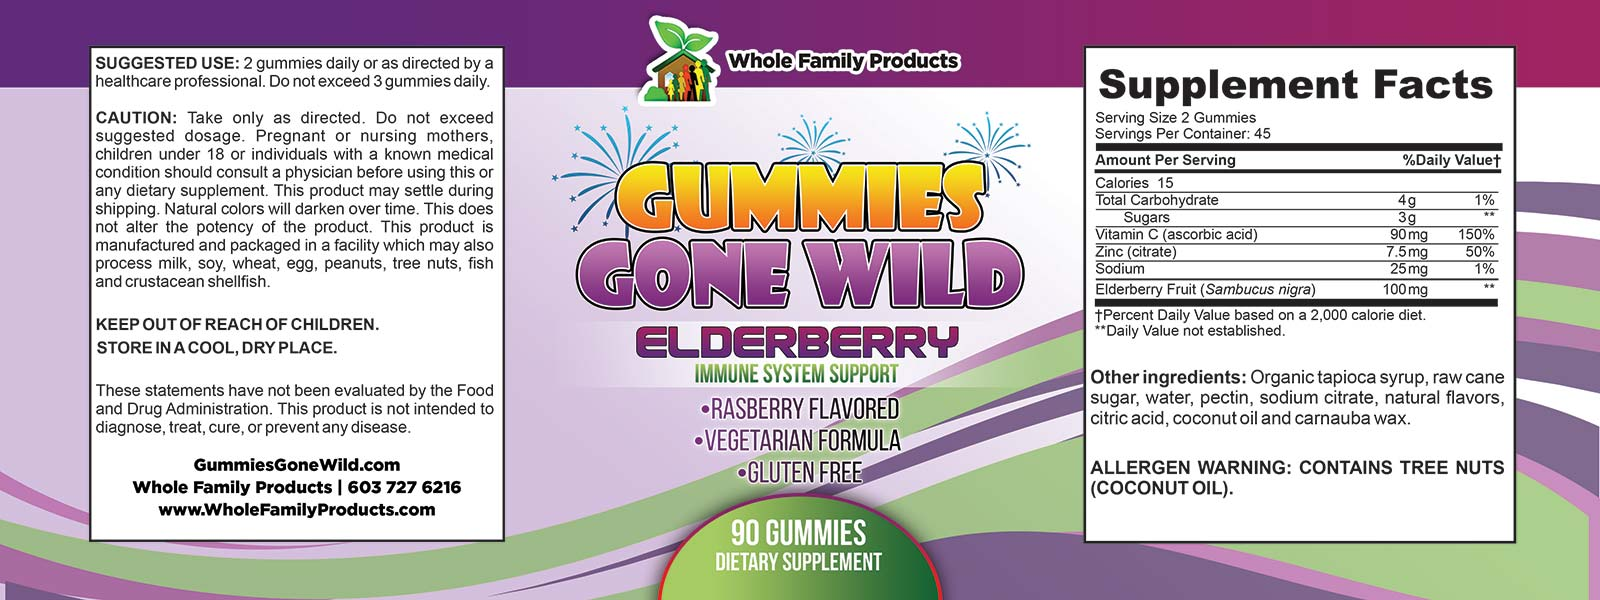 Gummies Gone Wild Elderberry Label